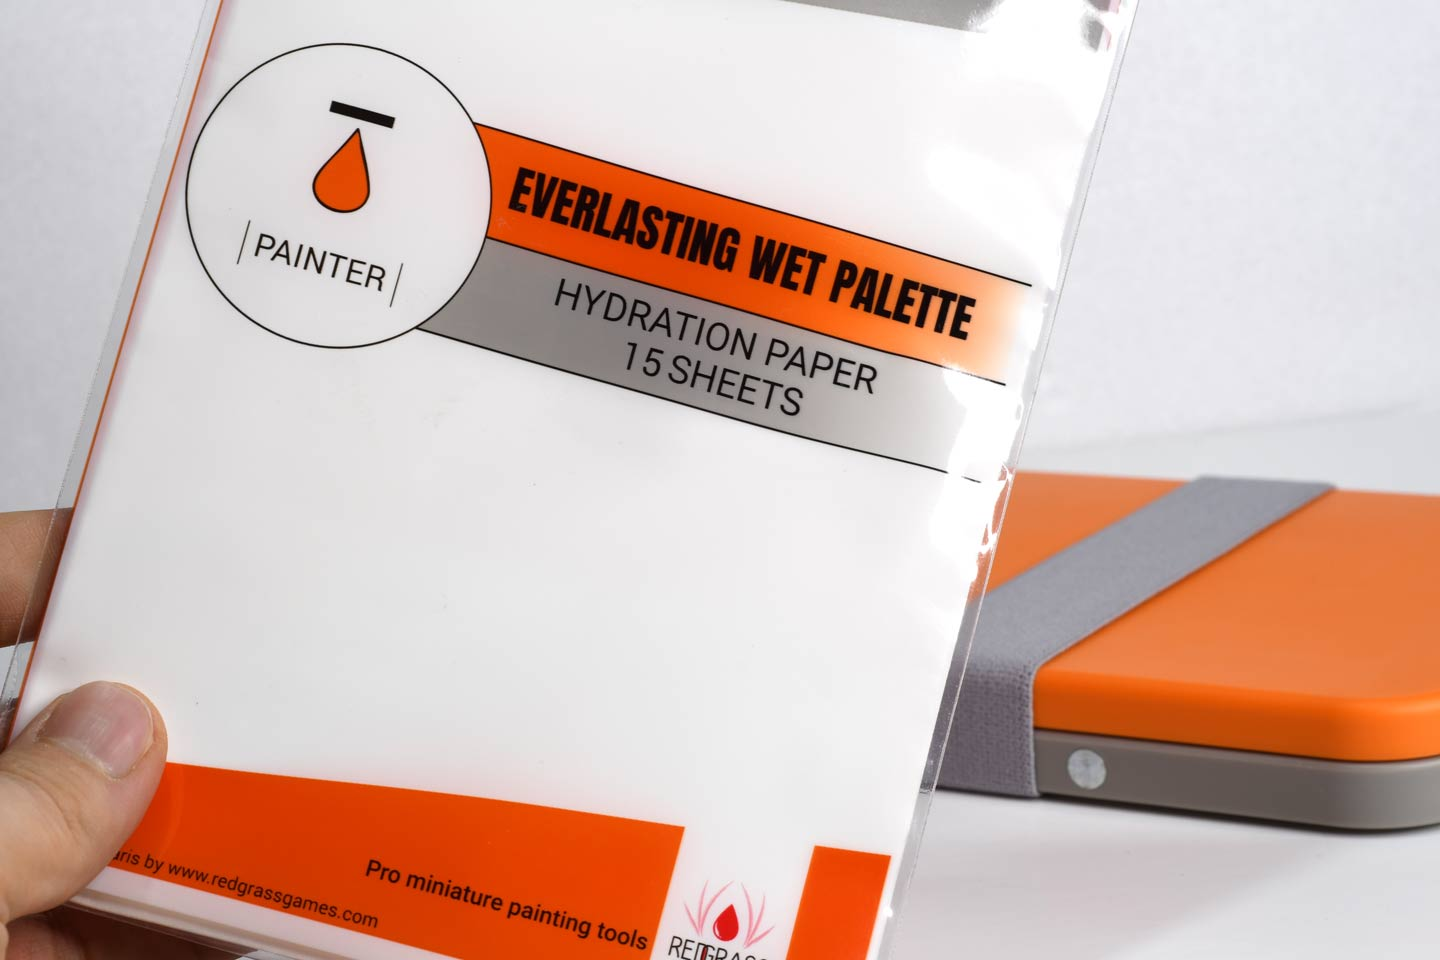 painter-wet-palette-hydration-sheet